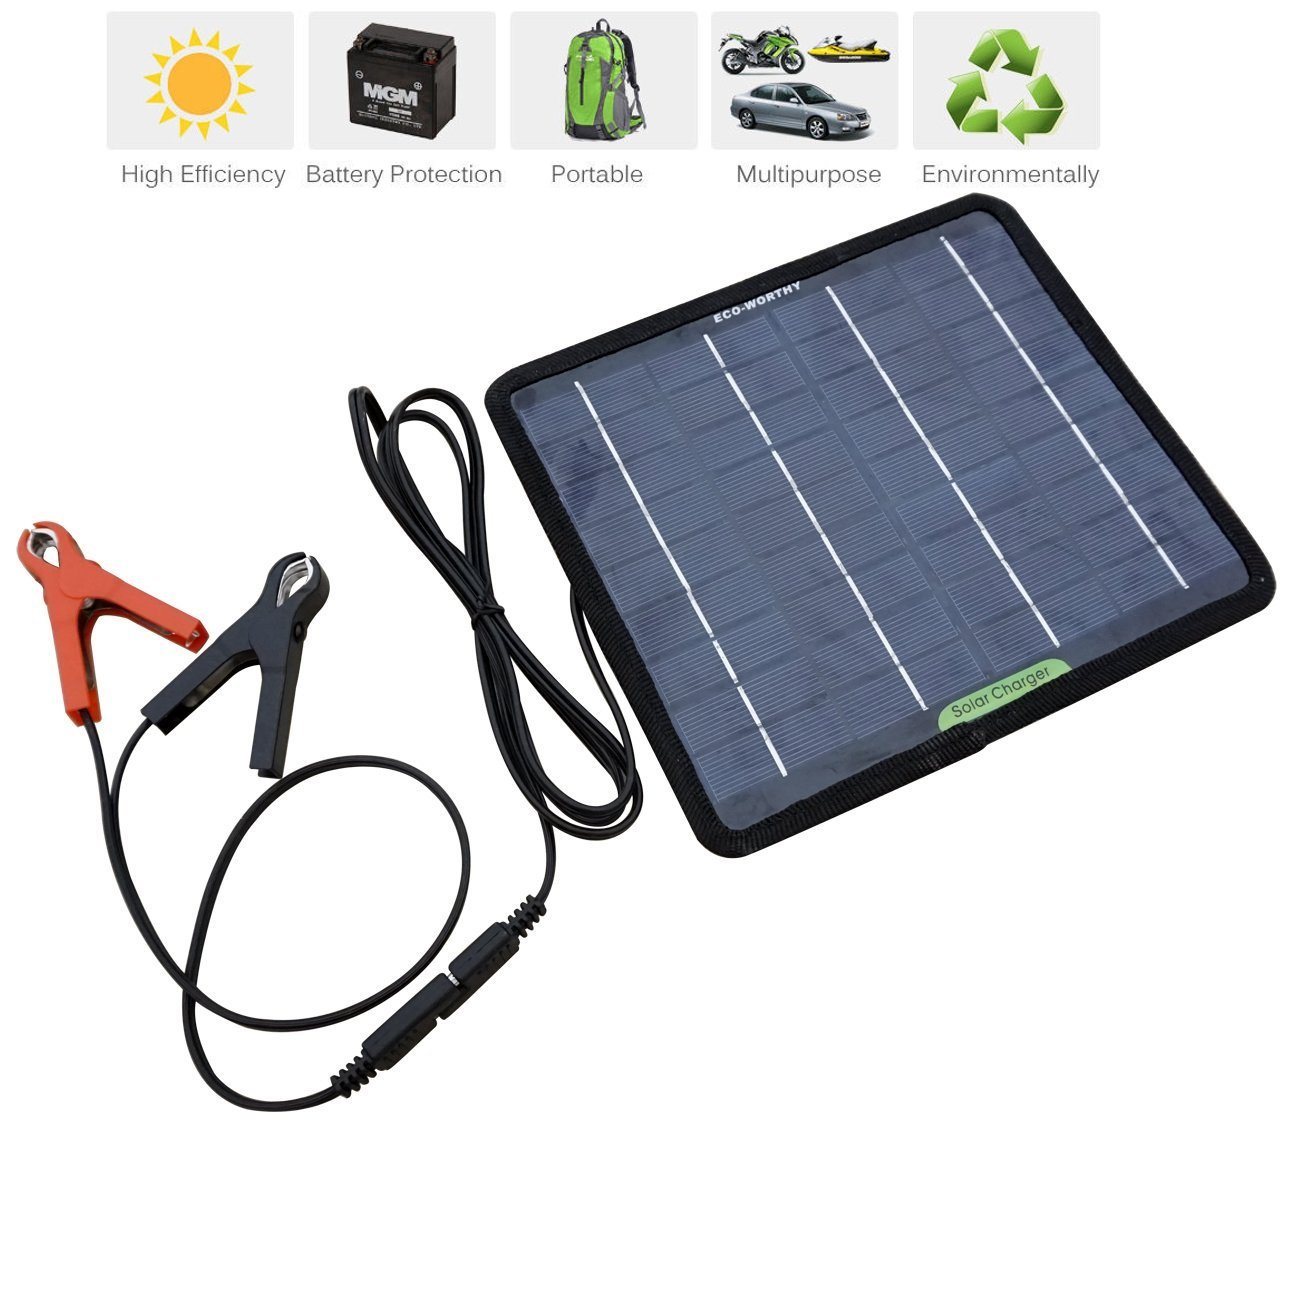 Eco Worthy 12 Volts 5 Watts Portable Power Solar Panel Battery Charger Circuit With Over Charge Protection My Backup For Car Boat Batteries Garden Outdoor